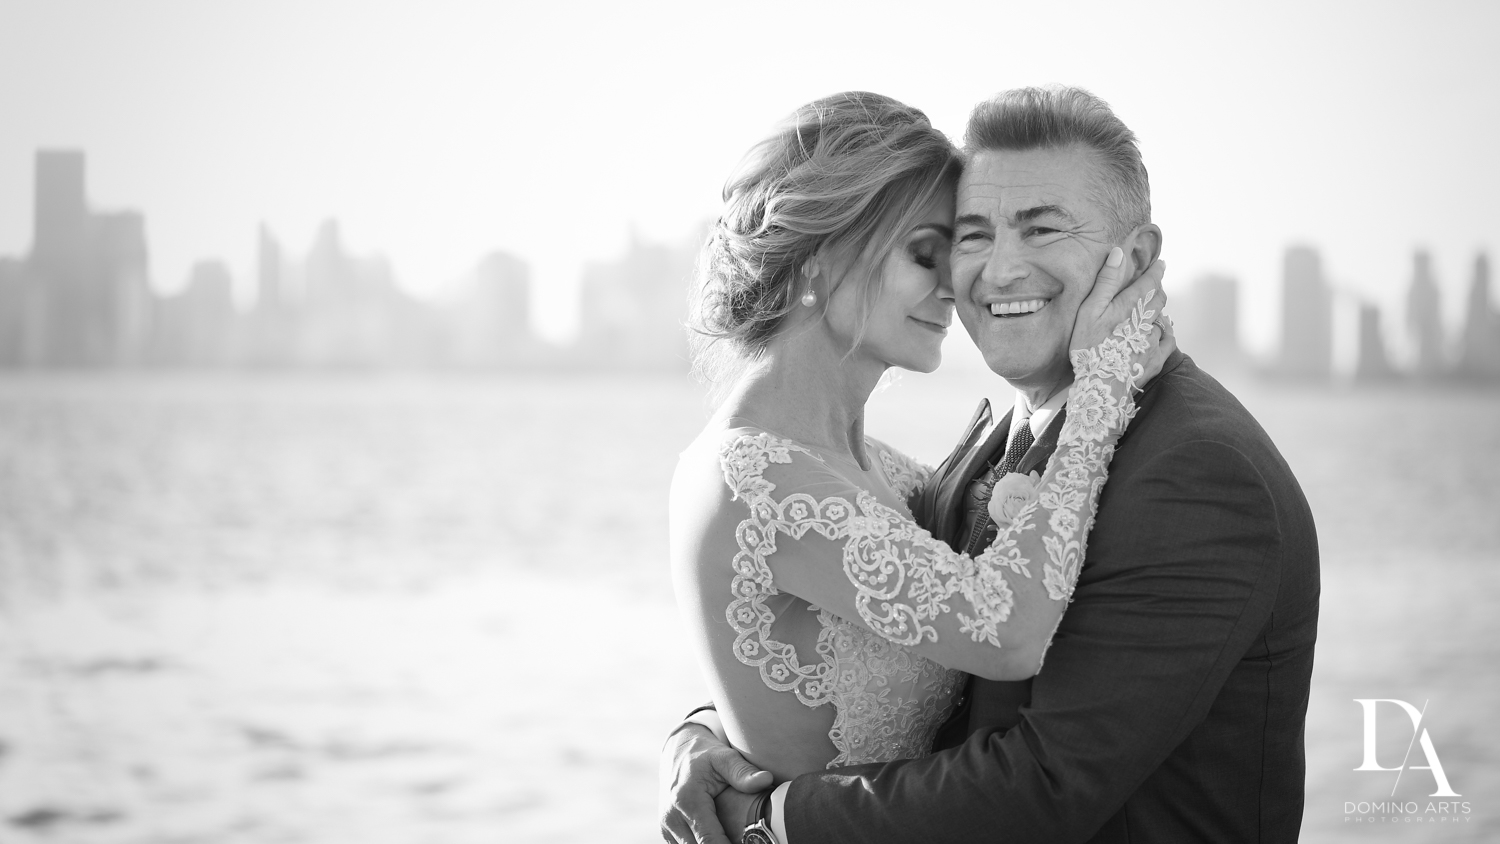 Black and white Classic & Elegant Wedding Photography at Fisher Island Miami by Domino Arts Photography